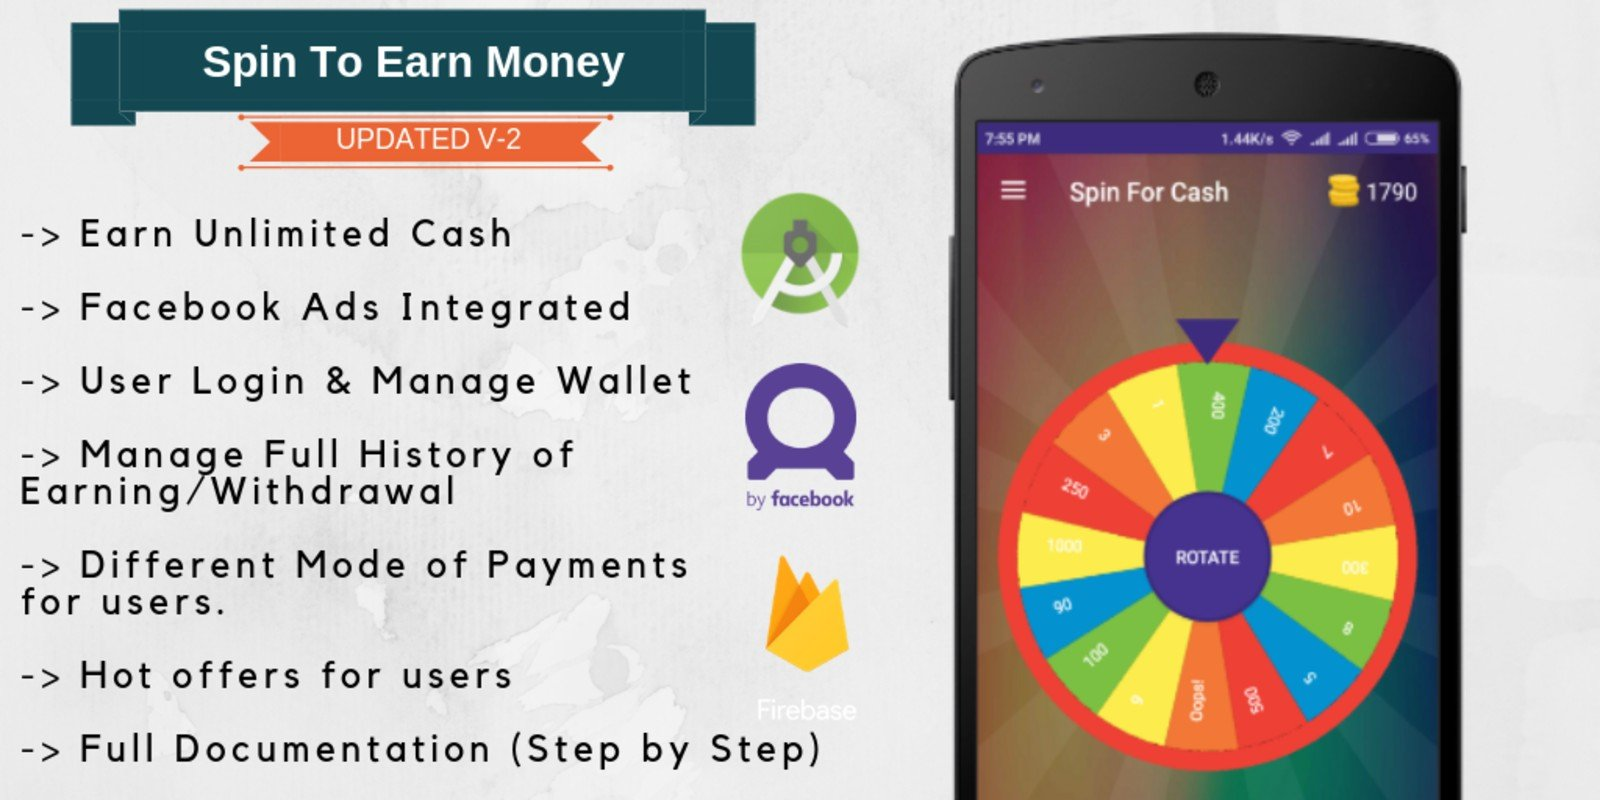 Spin For Cash - Android Source Code